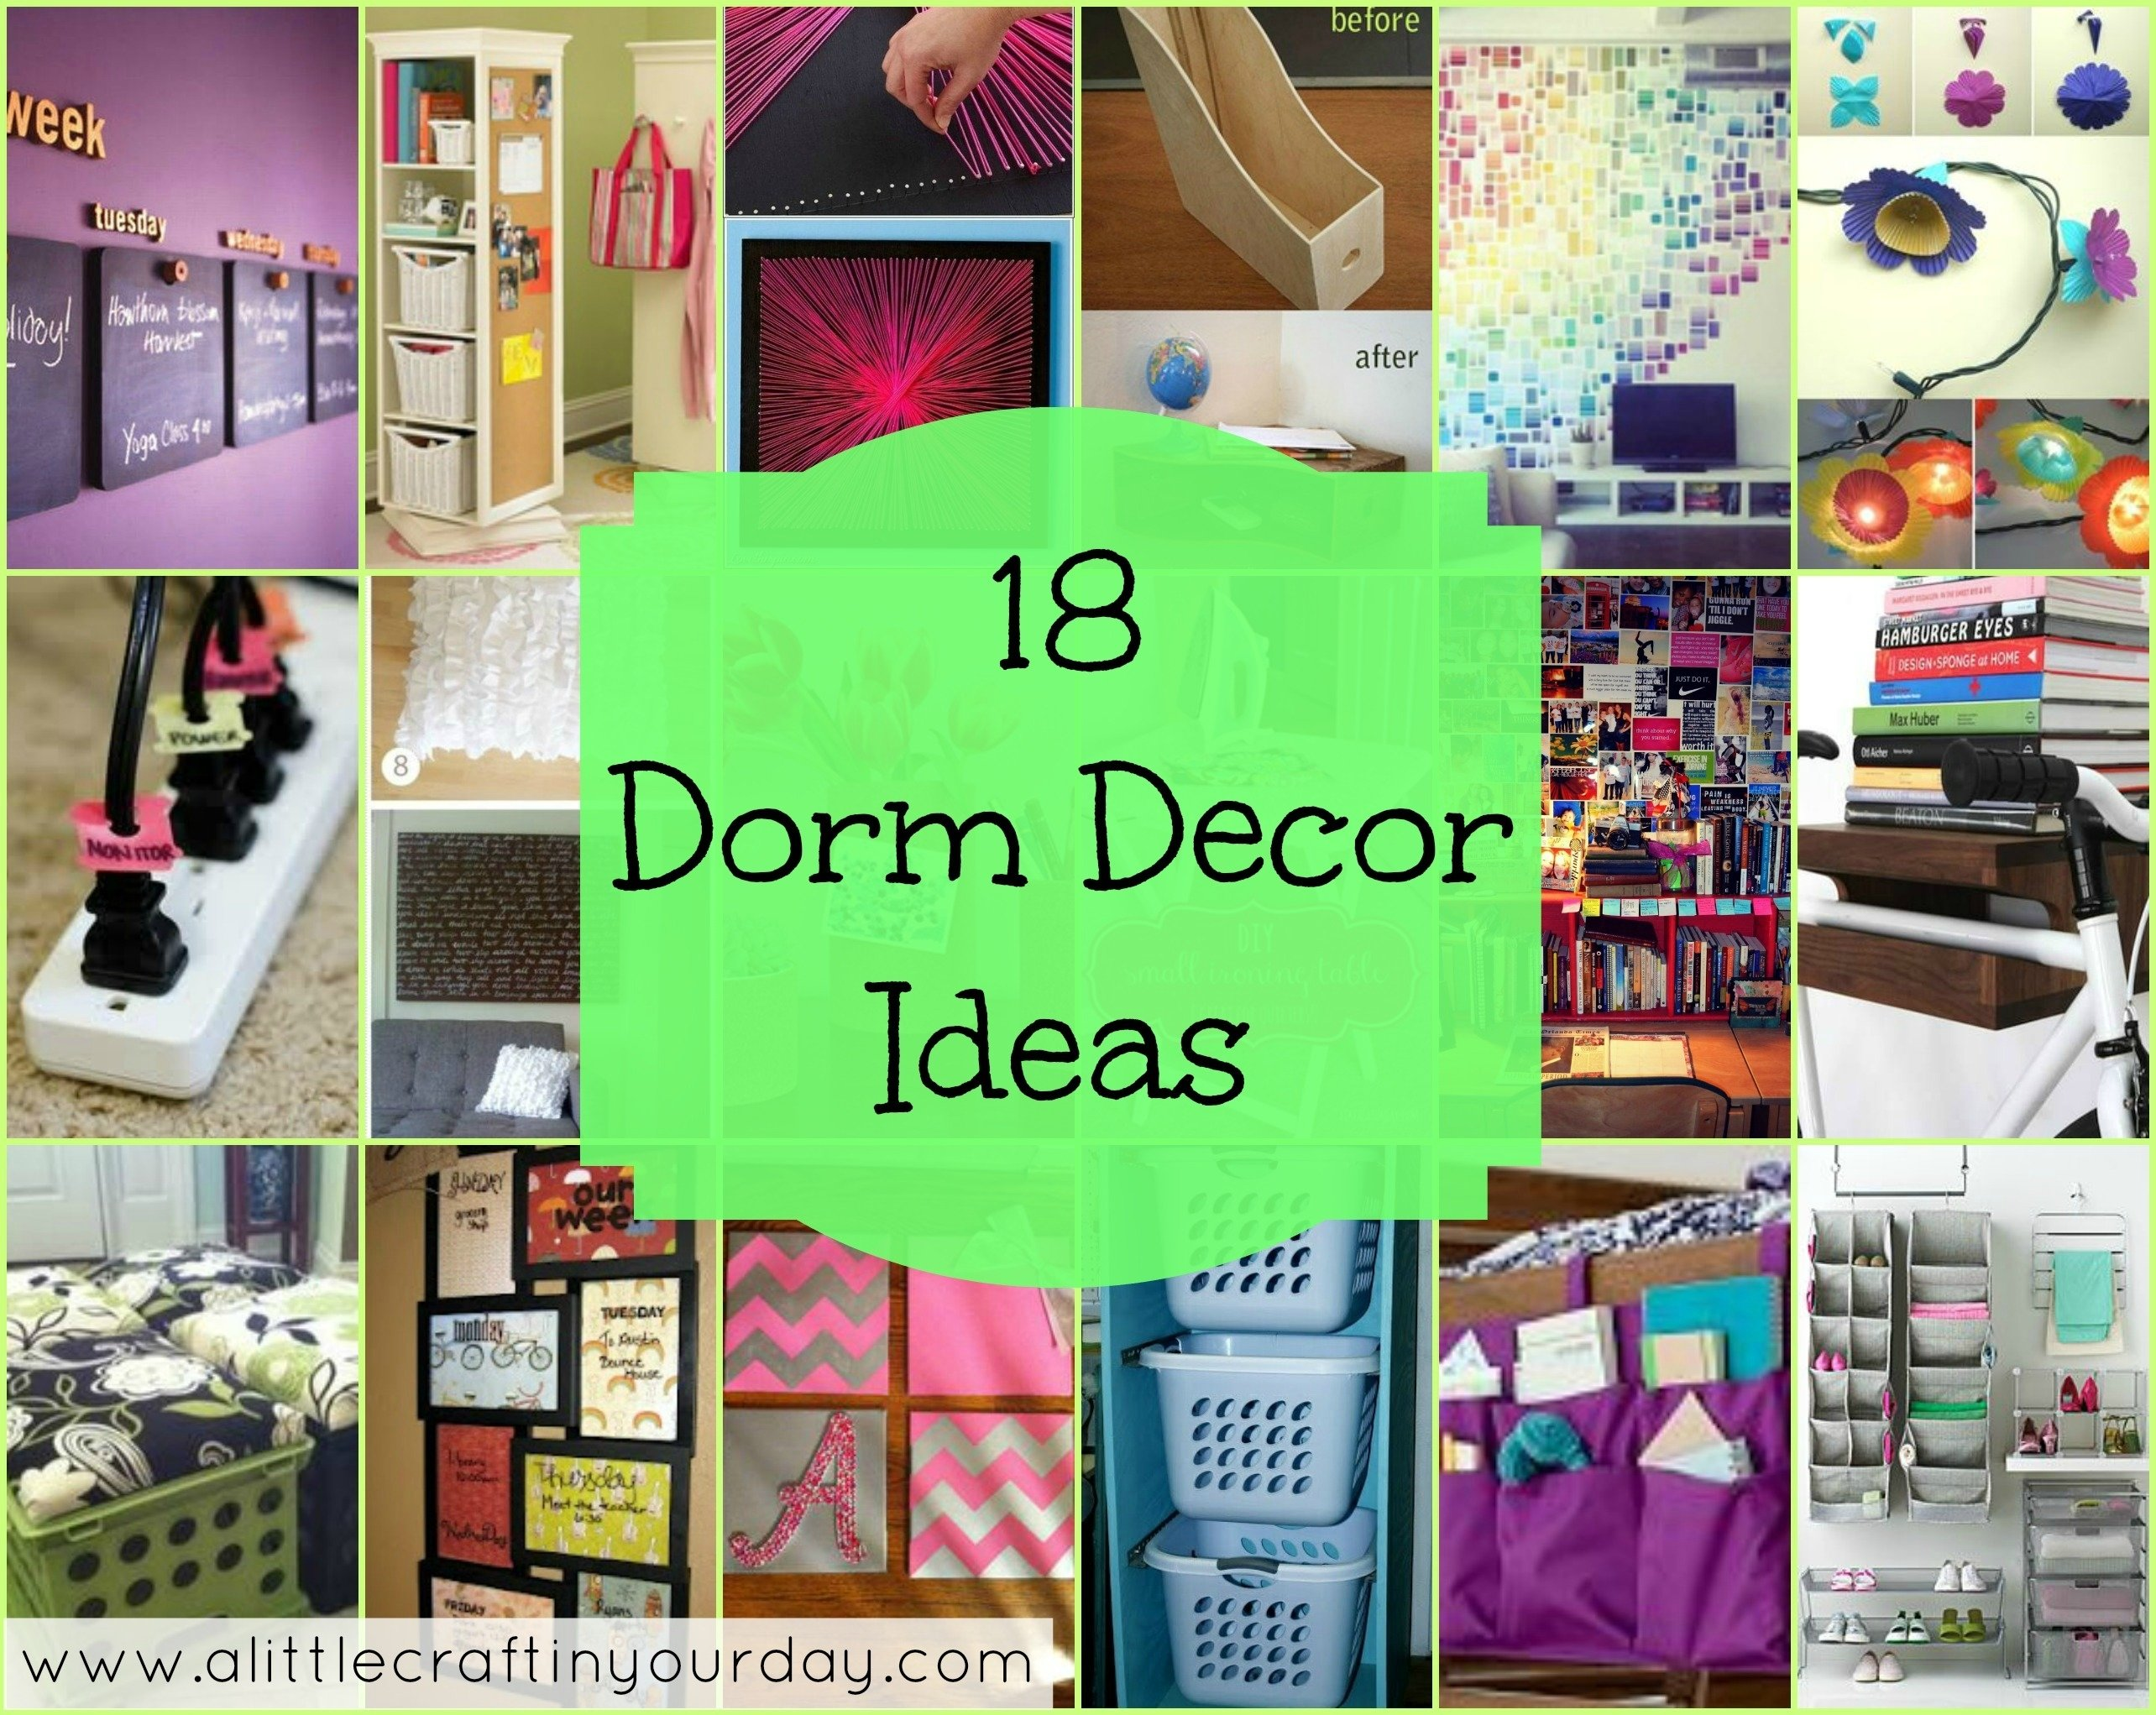 10 Most Popular College Dorm Room Decorating Ideas 18 dorm decor ideas a little craft in your day 2021